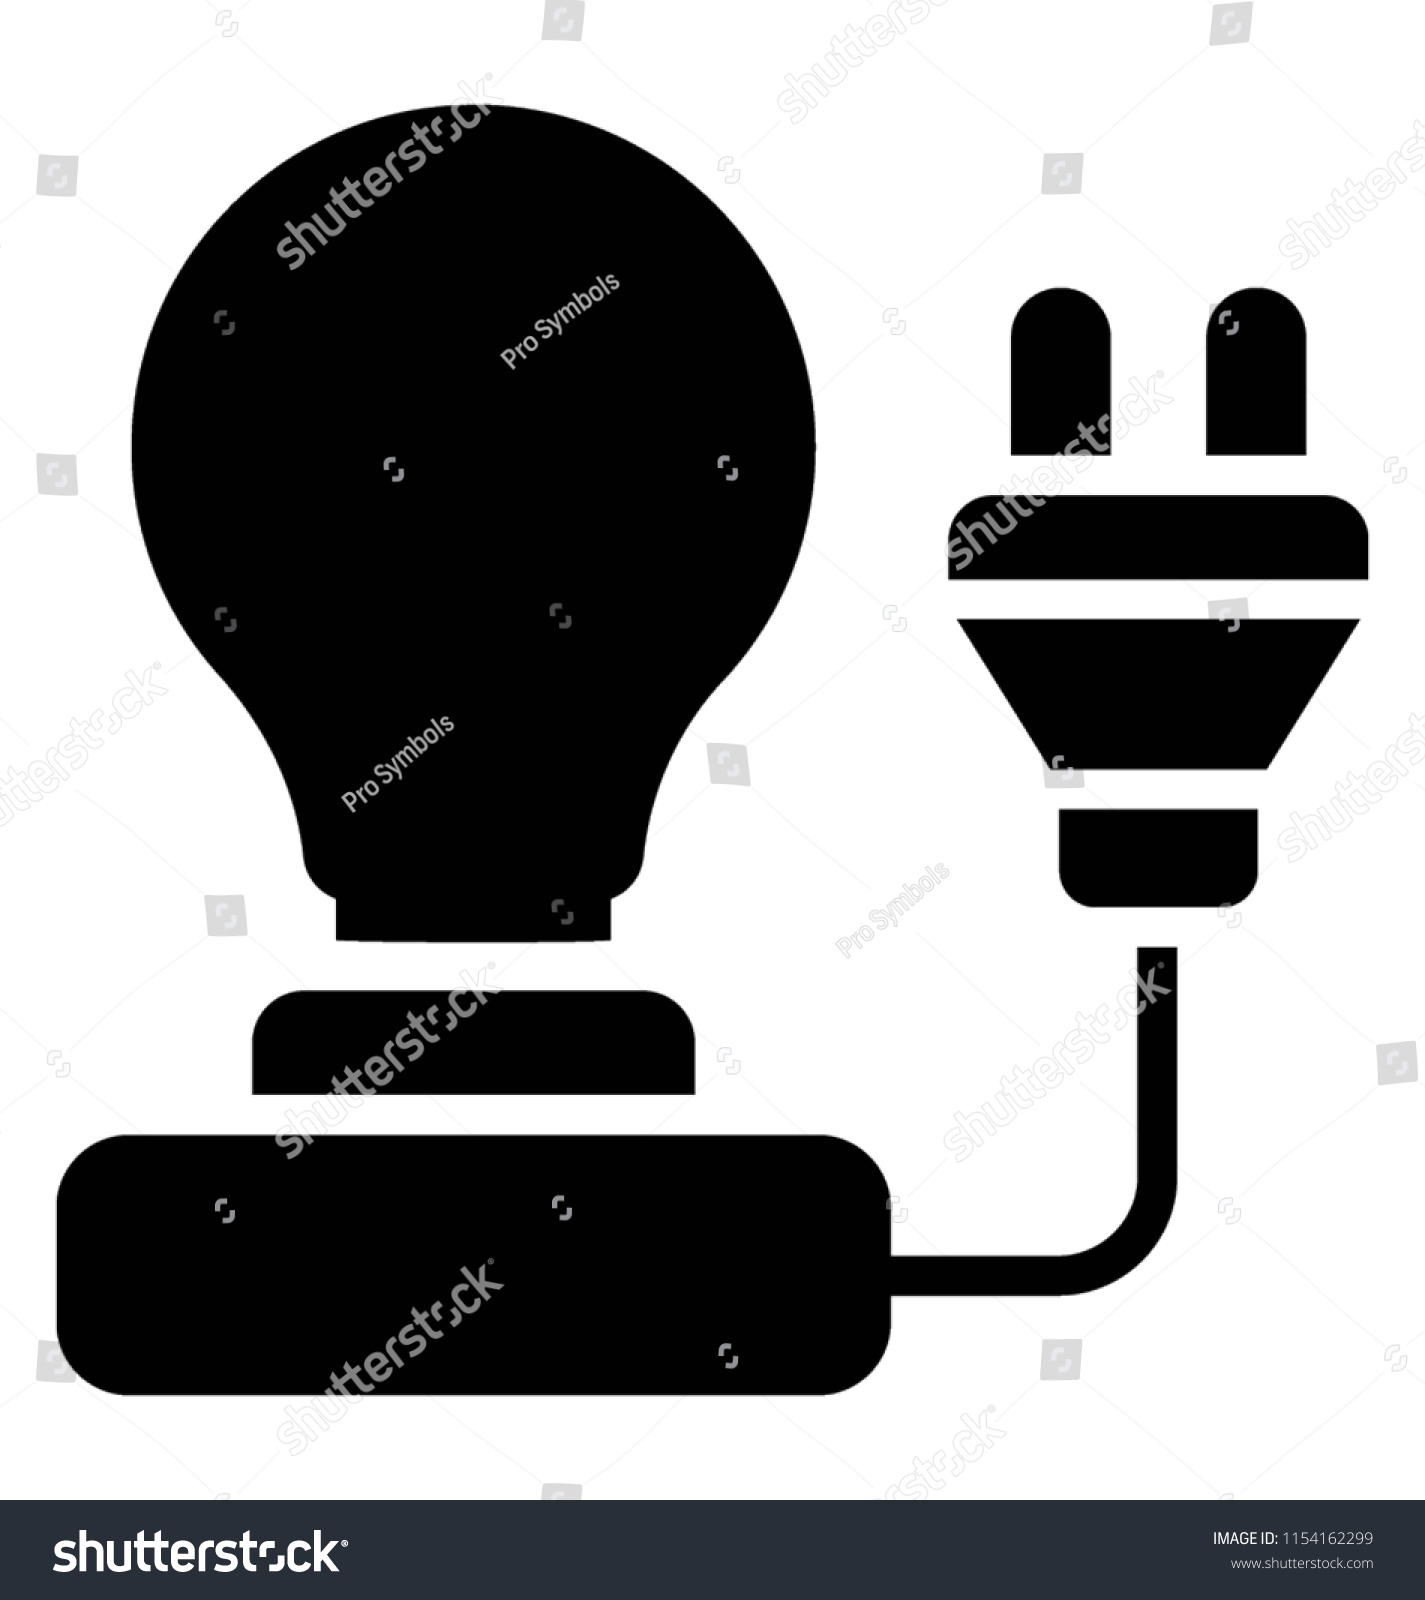 Light Bulb Electric Plug Representing Electricity Stock Vector All Electrical Appliances Including Bulbs Stereos And With